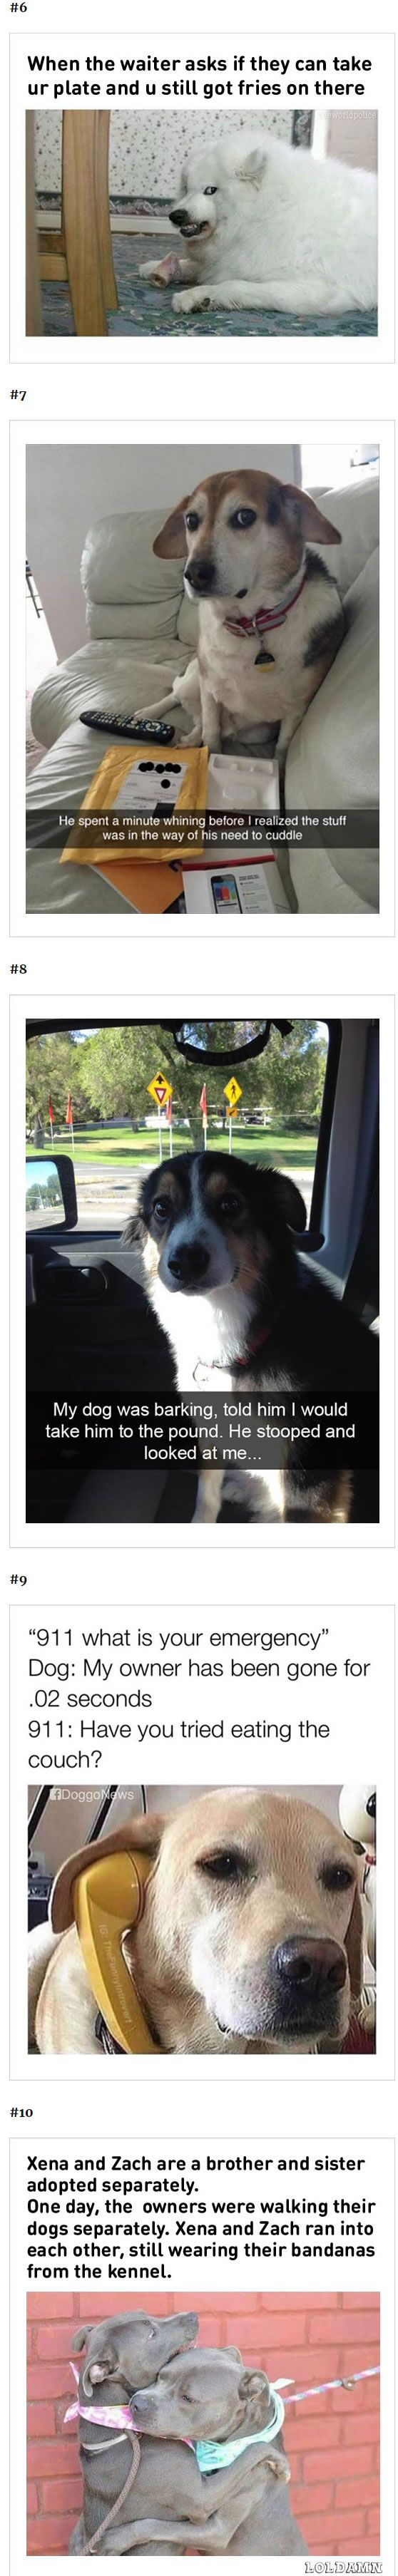 Best Hilarious Animal Memes Ideas On Pinterest Hilarious - 10 hilarious conversations dogs have dial 911